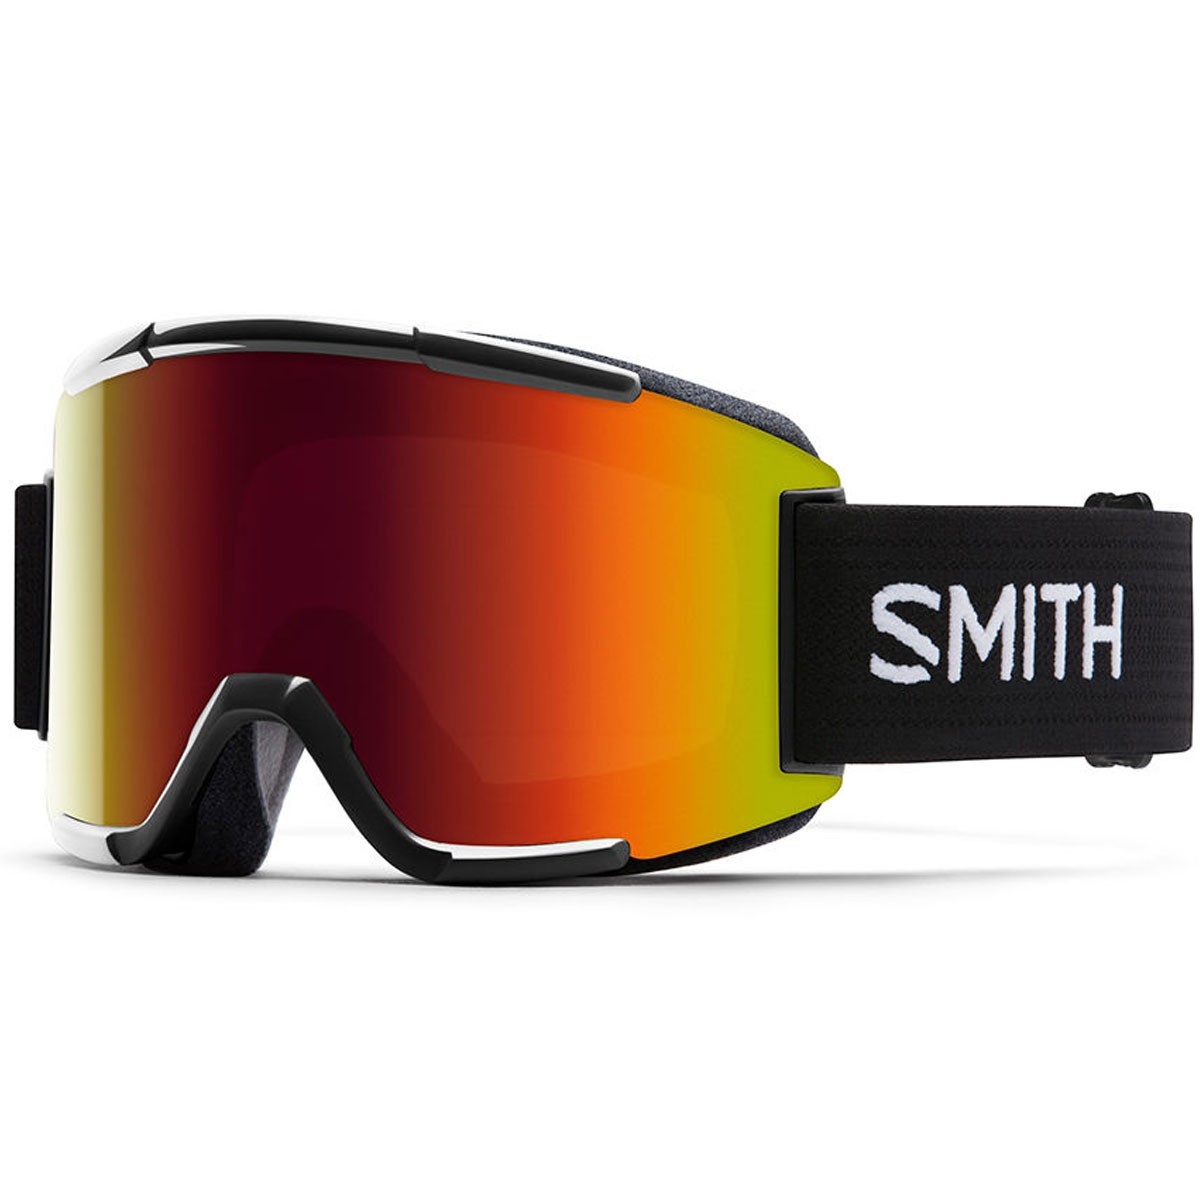 Smith Squad Snowboard Goggles - Black with Red Sol X Mirror